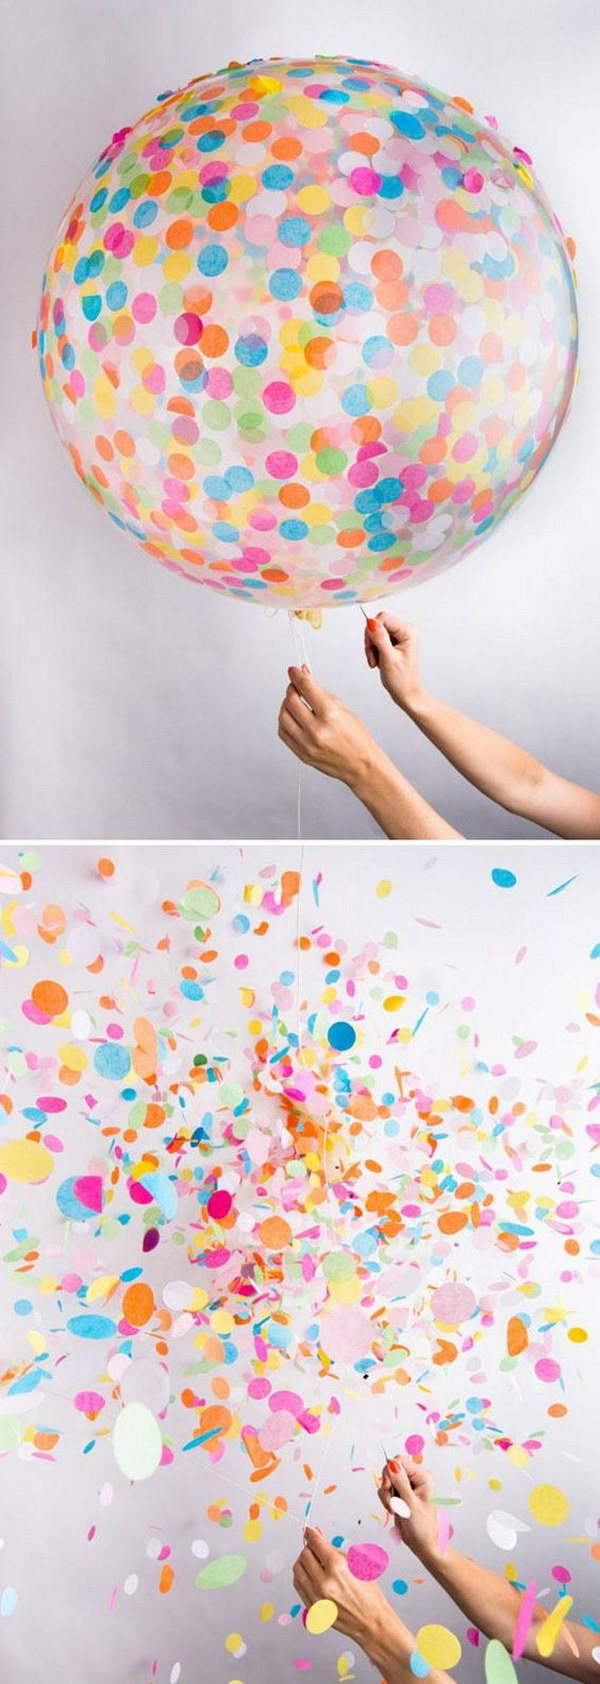 Colorful Confetti Balloon.